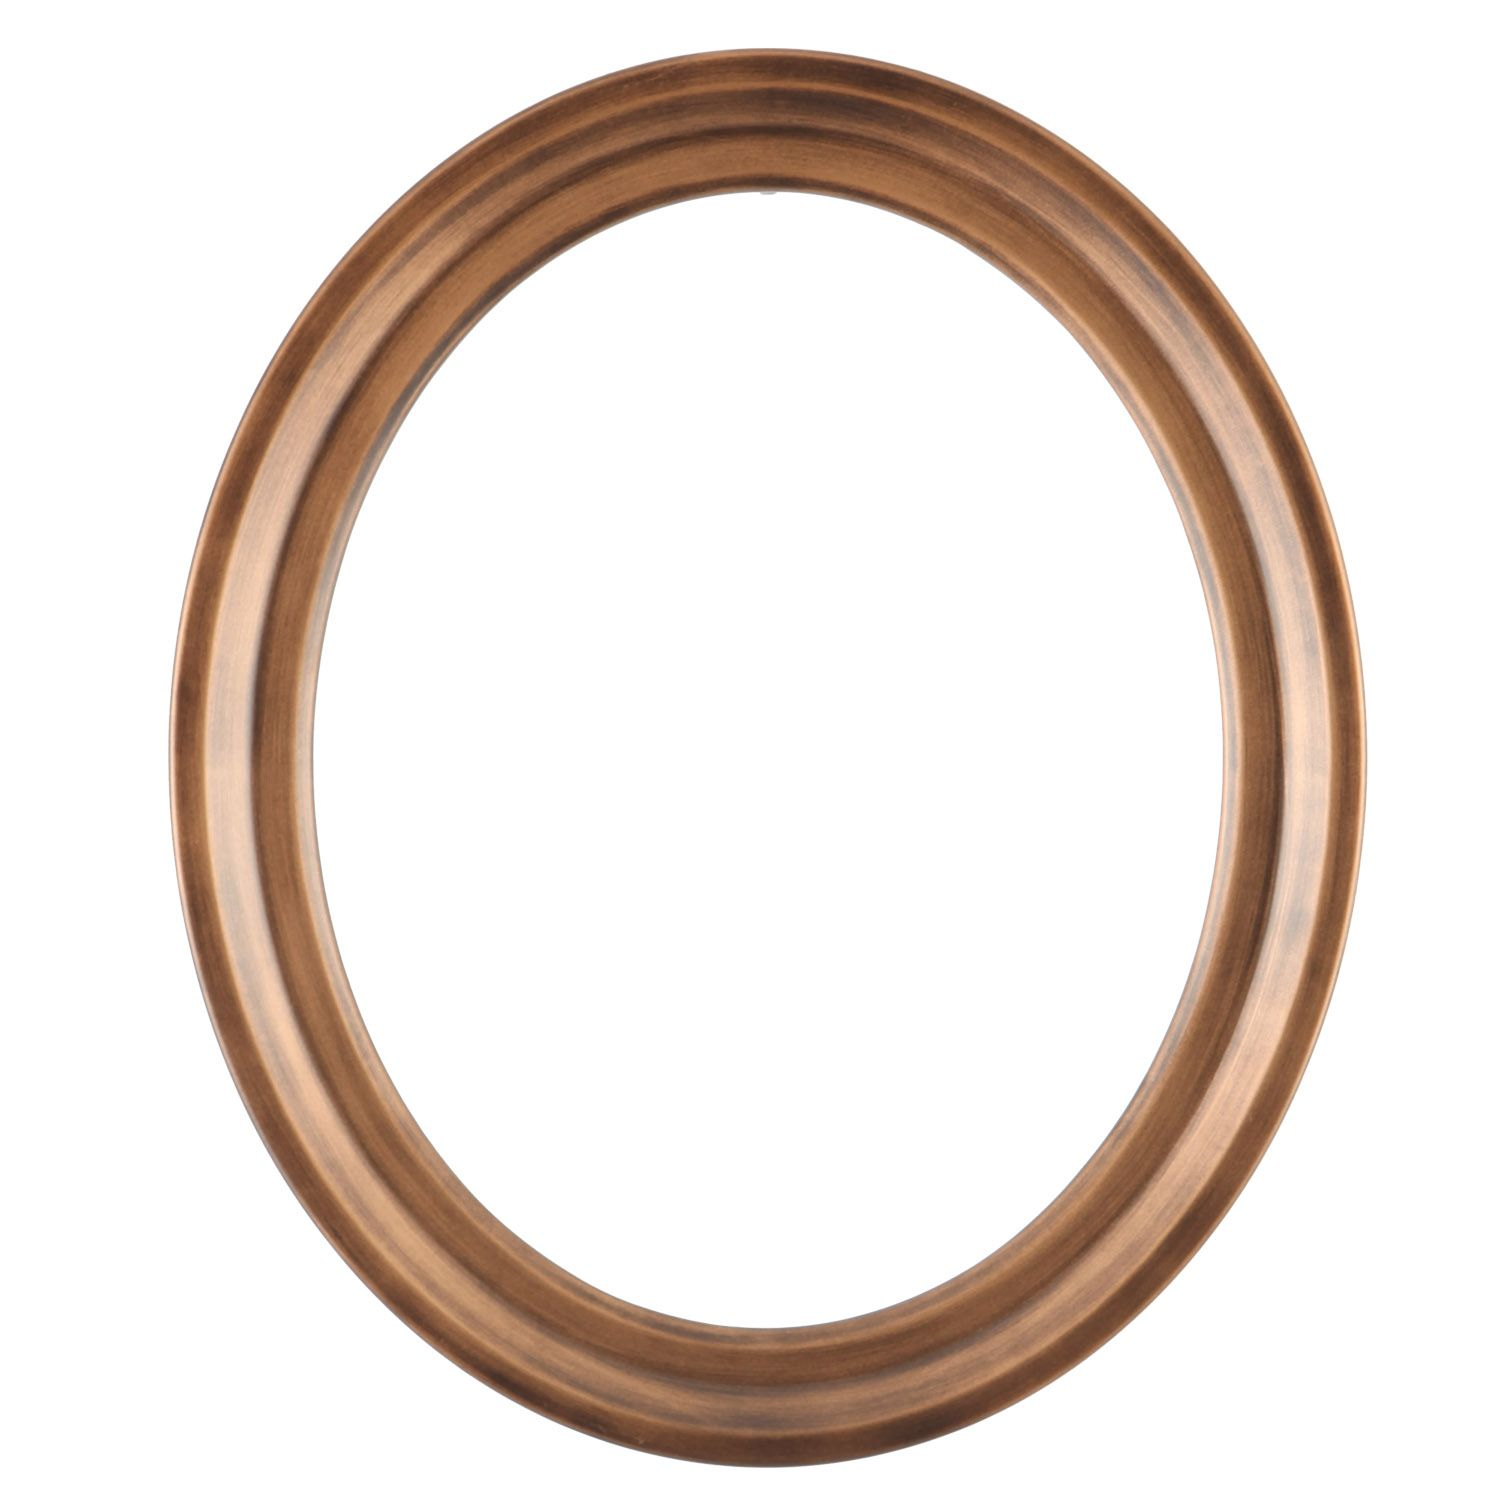 Oval Picture Frames, Round Picture Frames - ArtToFrame